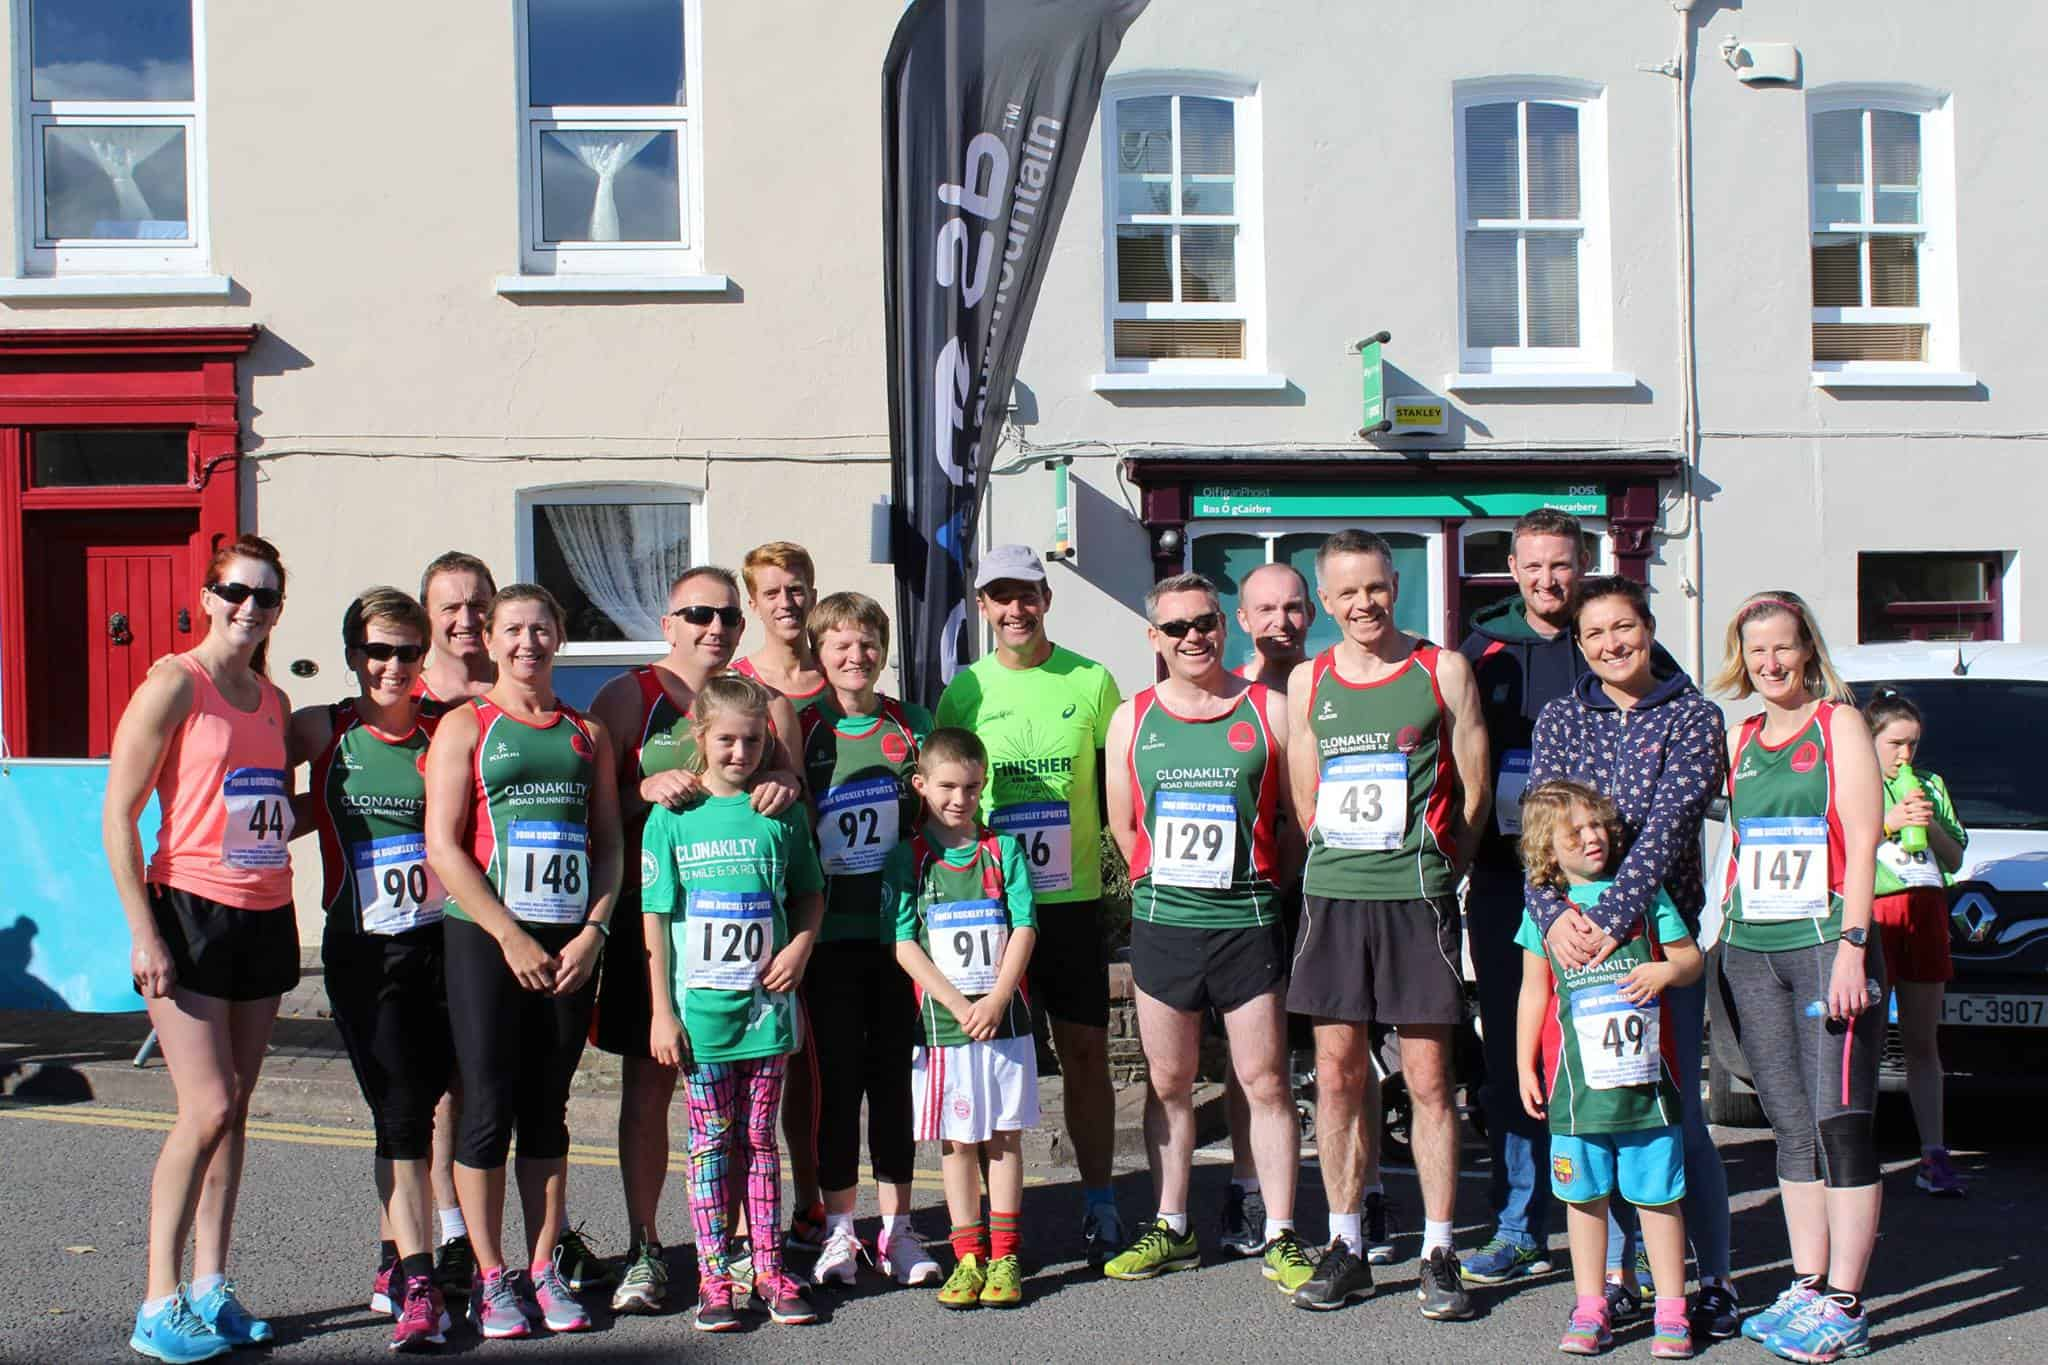 Rosscarbery Steam Engine Road Race 5km